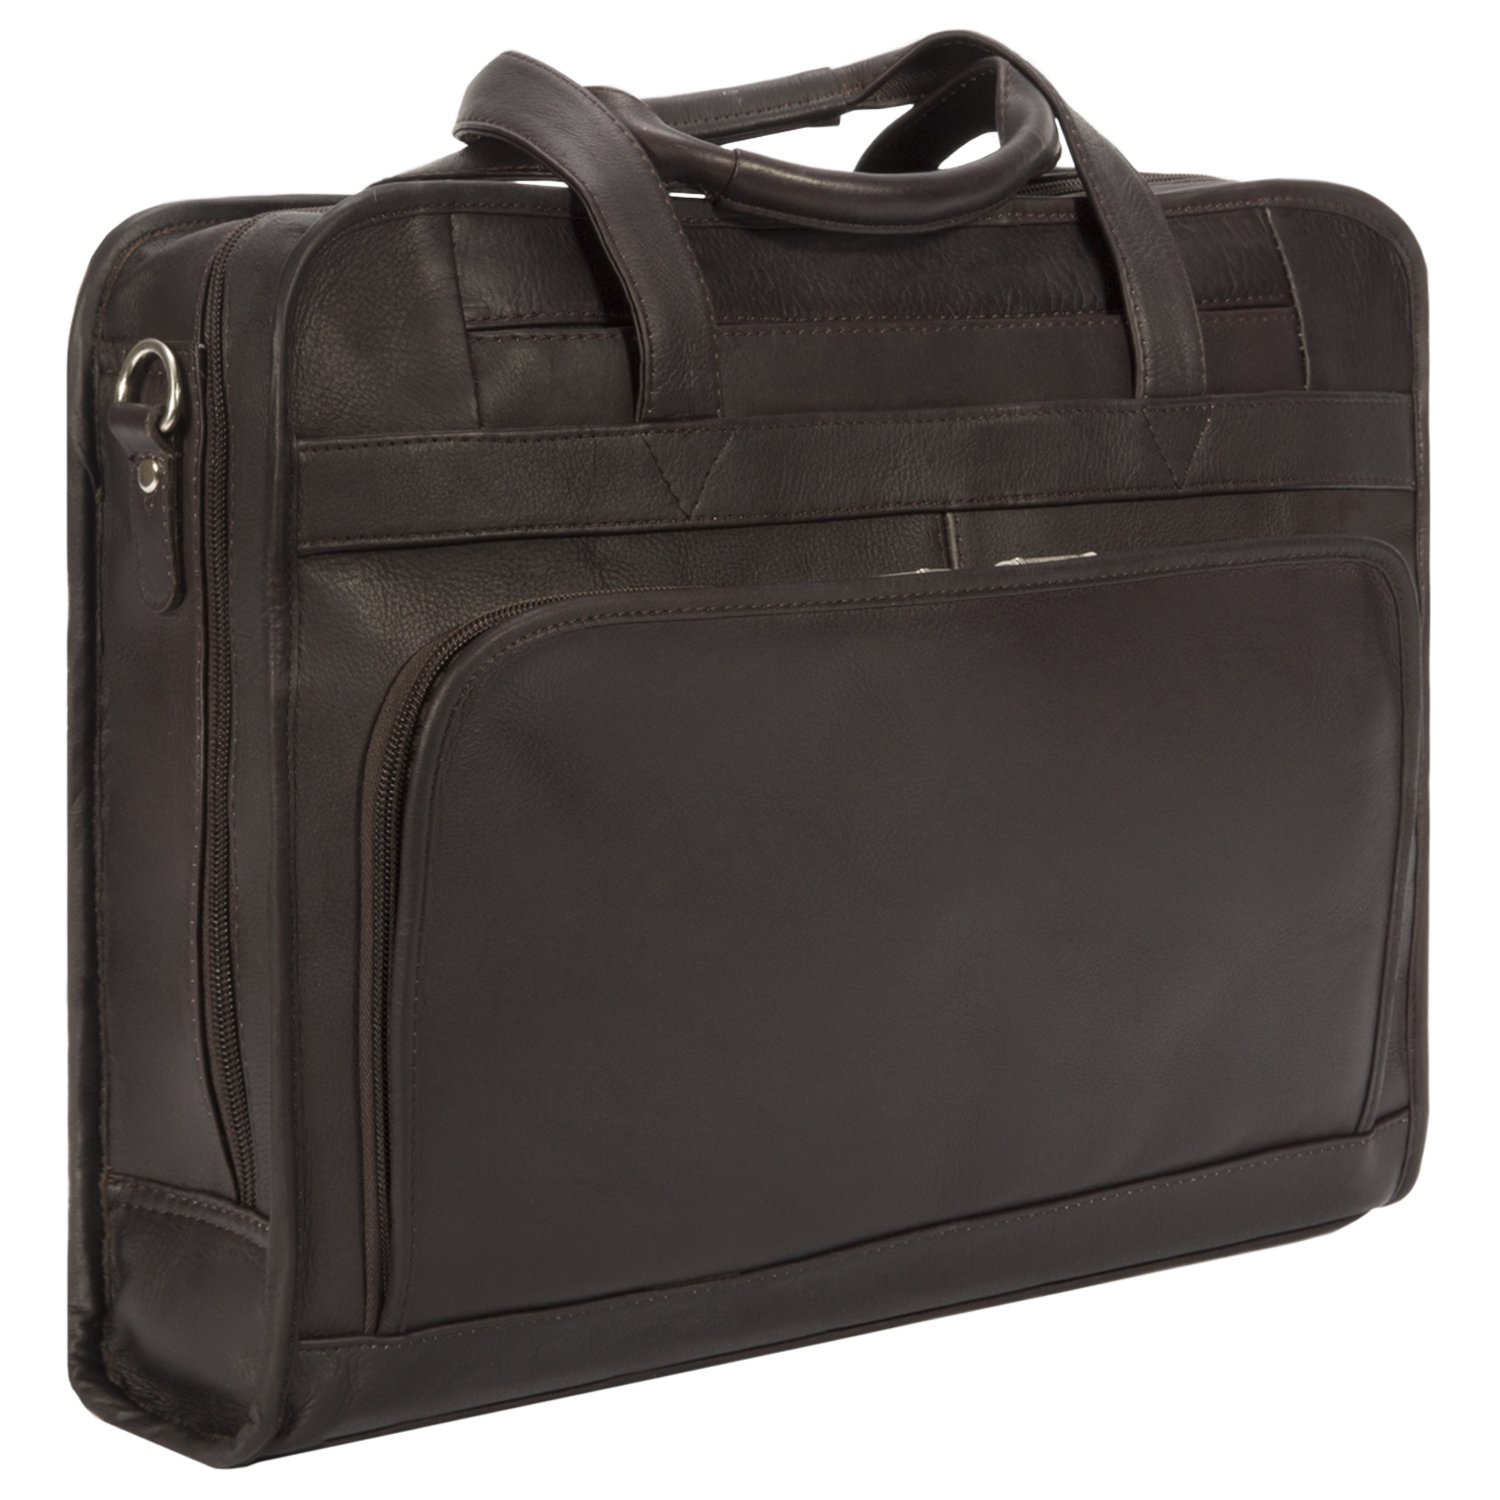 Leather Briefcase -Lisbon- by Muiska | Leather Laptop Case Computer Bag Classic Style Modern Functionality in Three Colors by Muiska